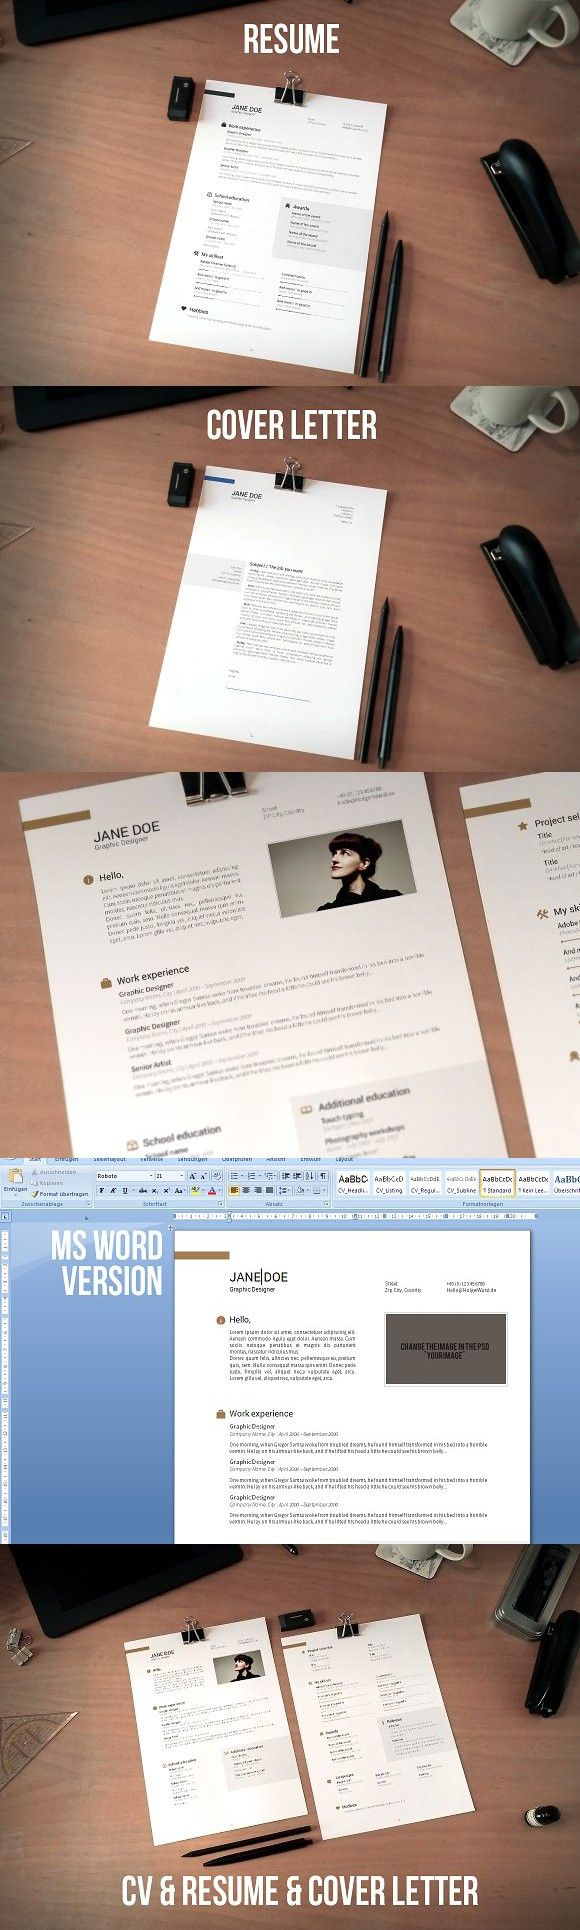 CV resume and cover letter set